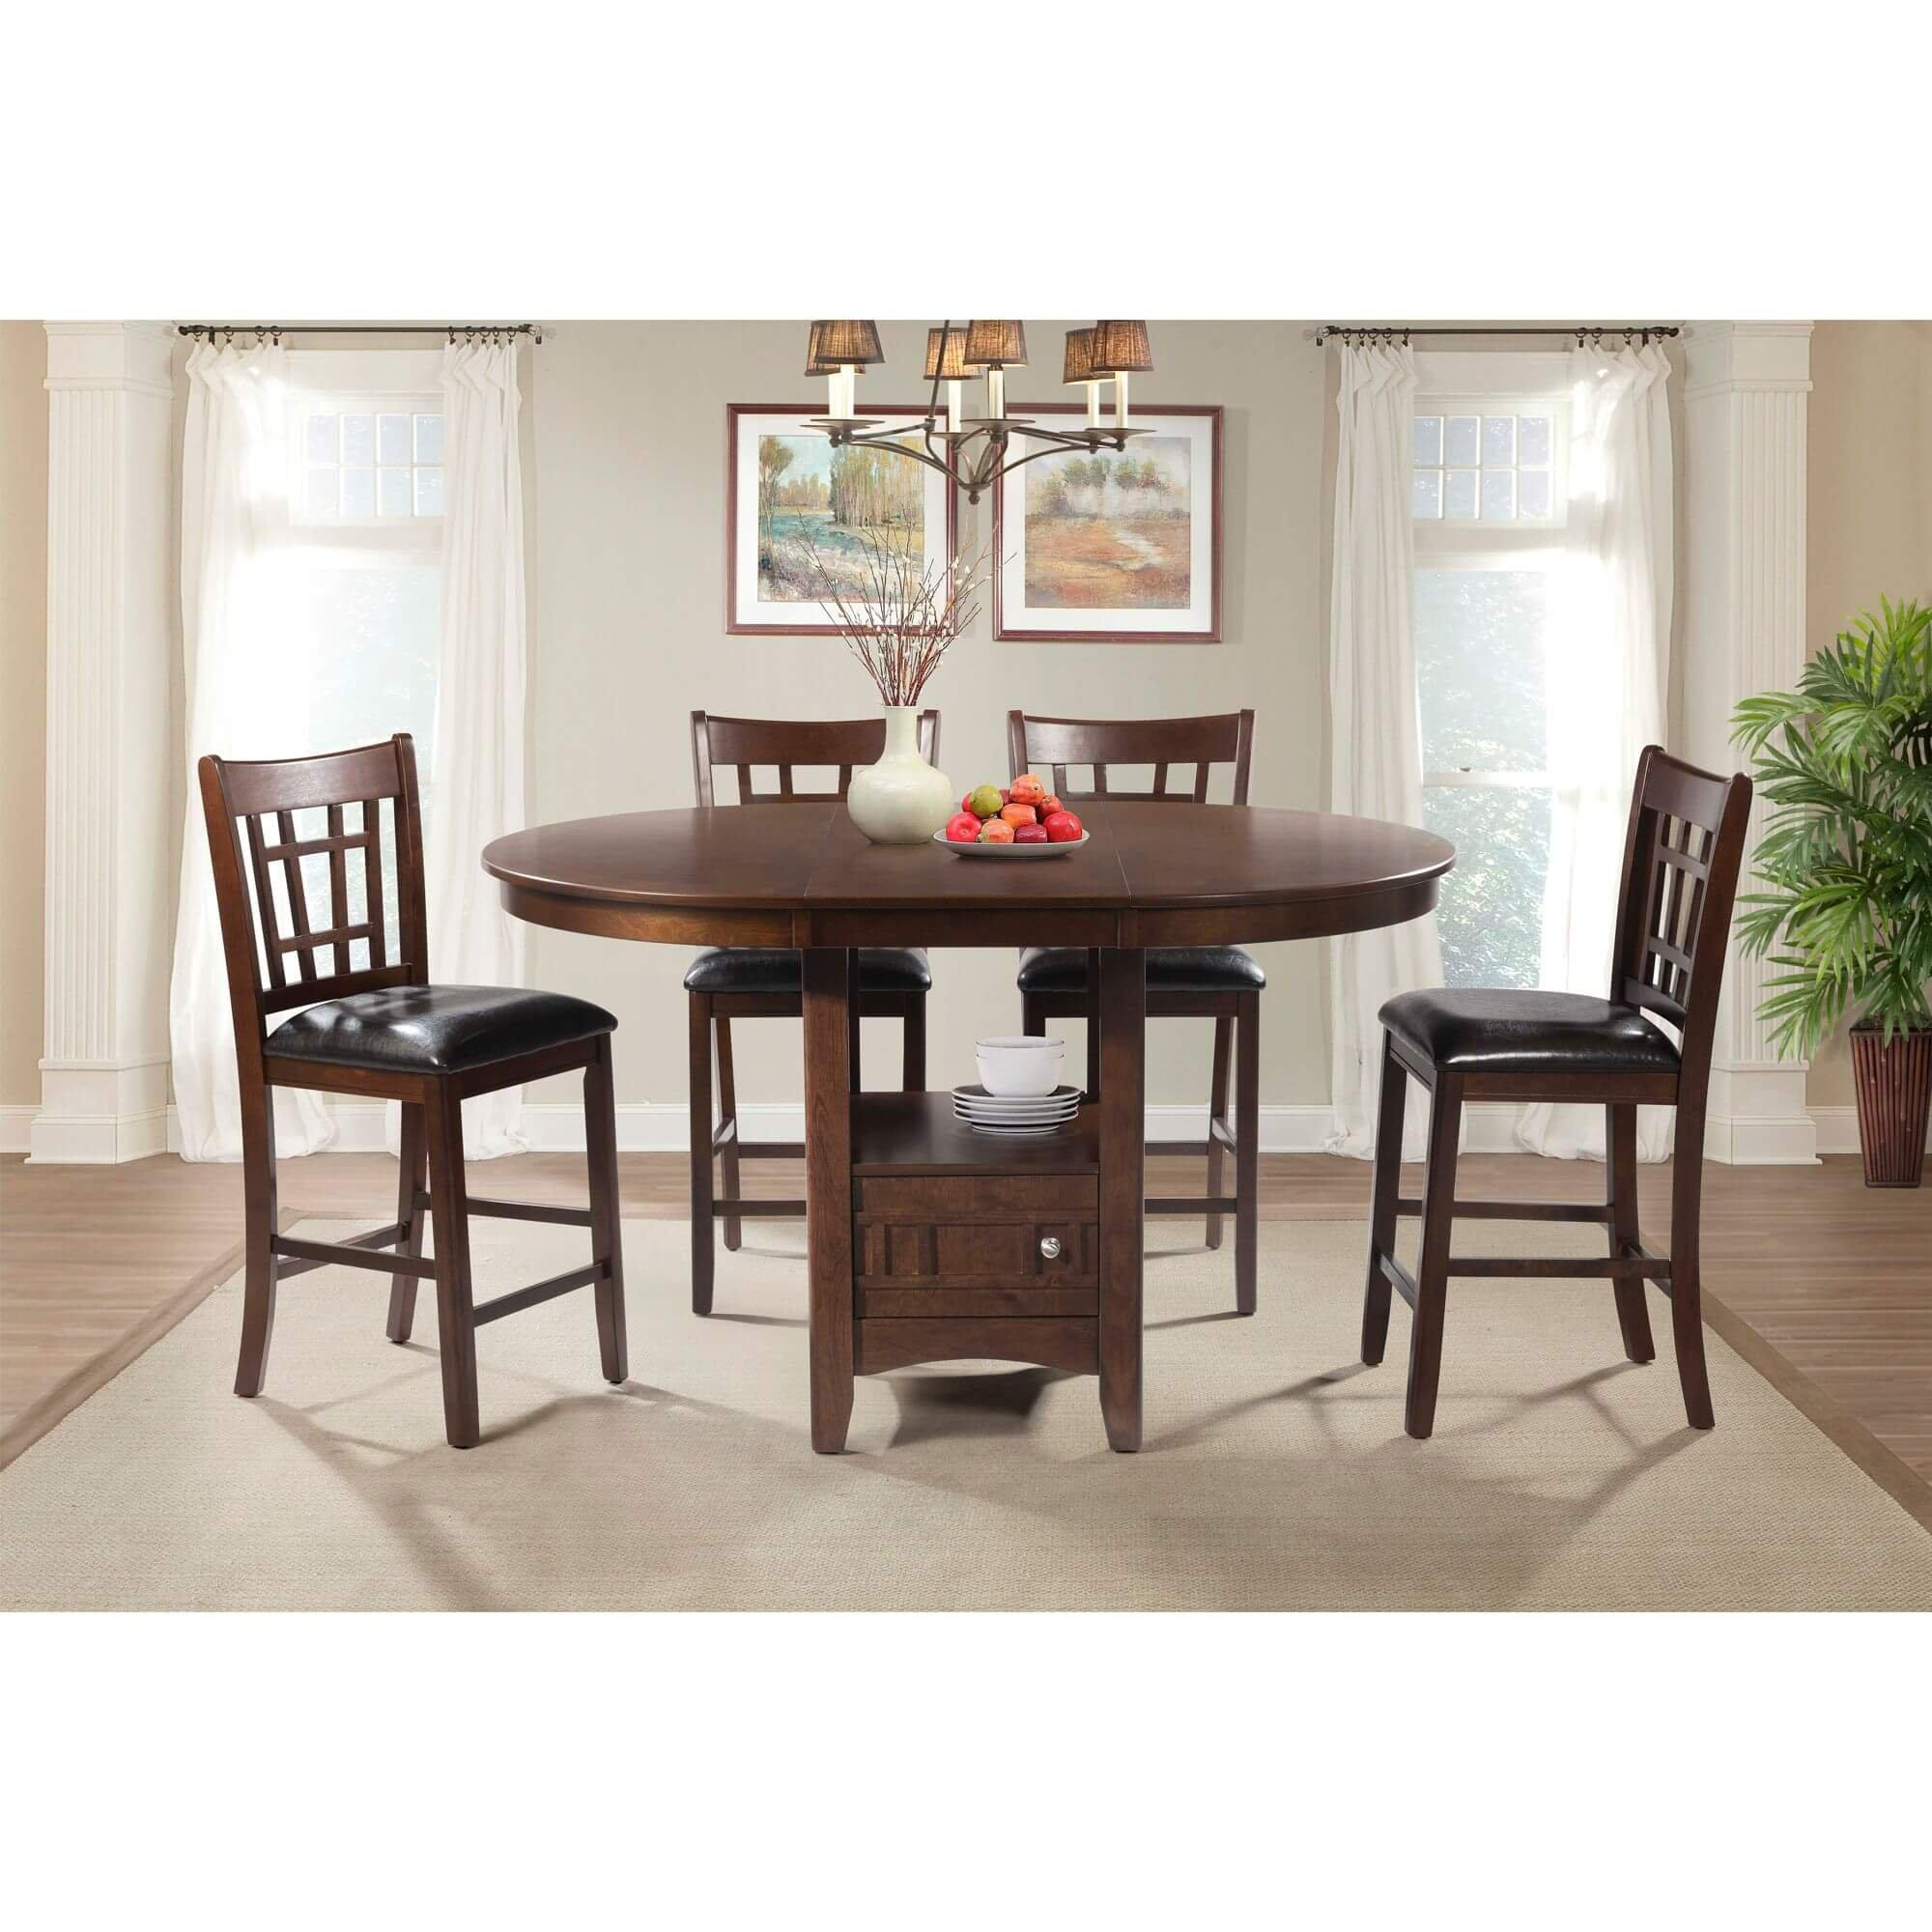 Rent To Own Elements International 5 Piece Max Pub Table Dining Room Collection At Aaron S Today